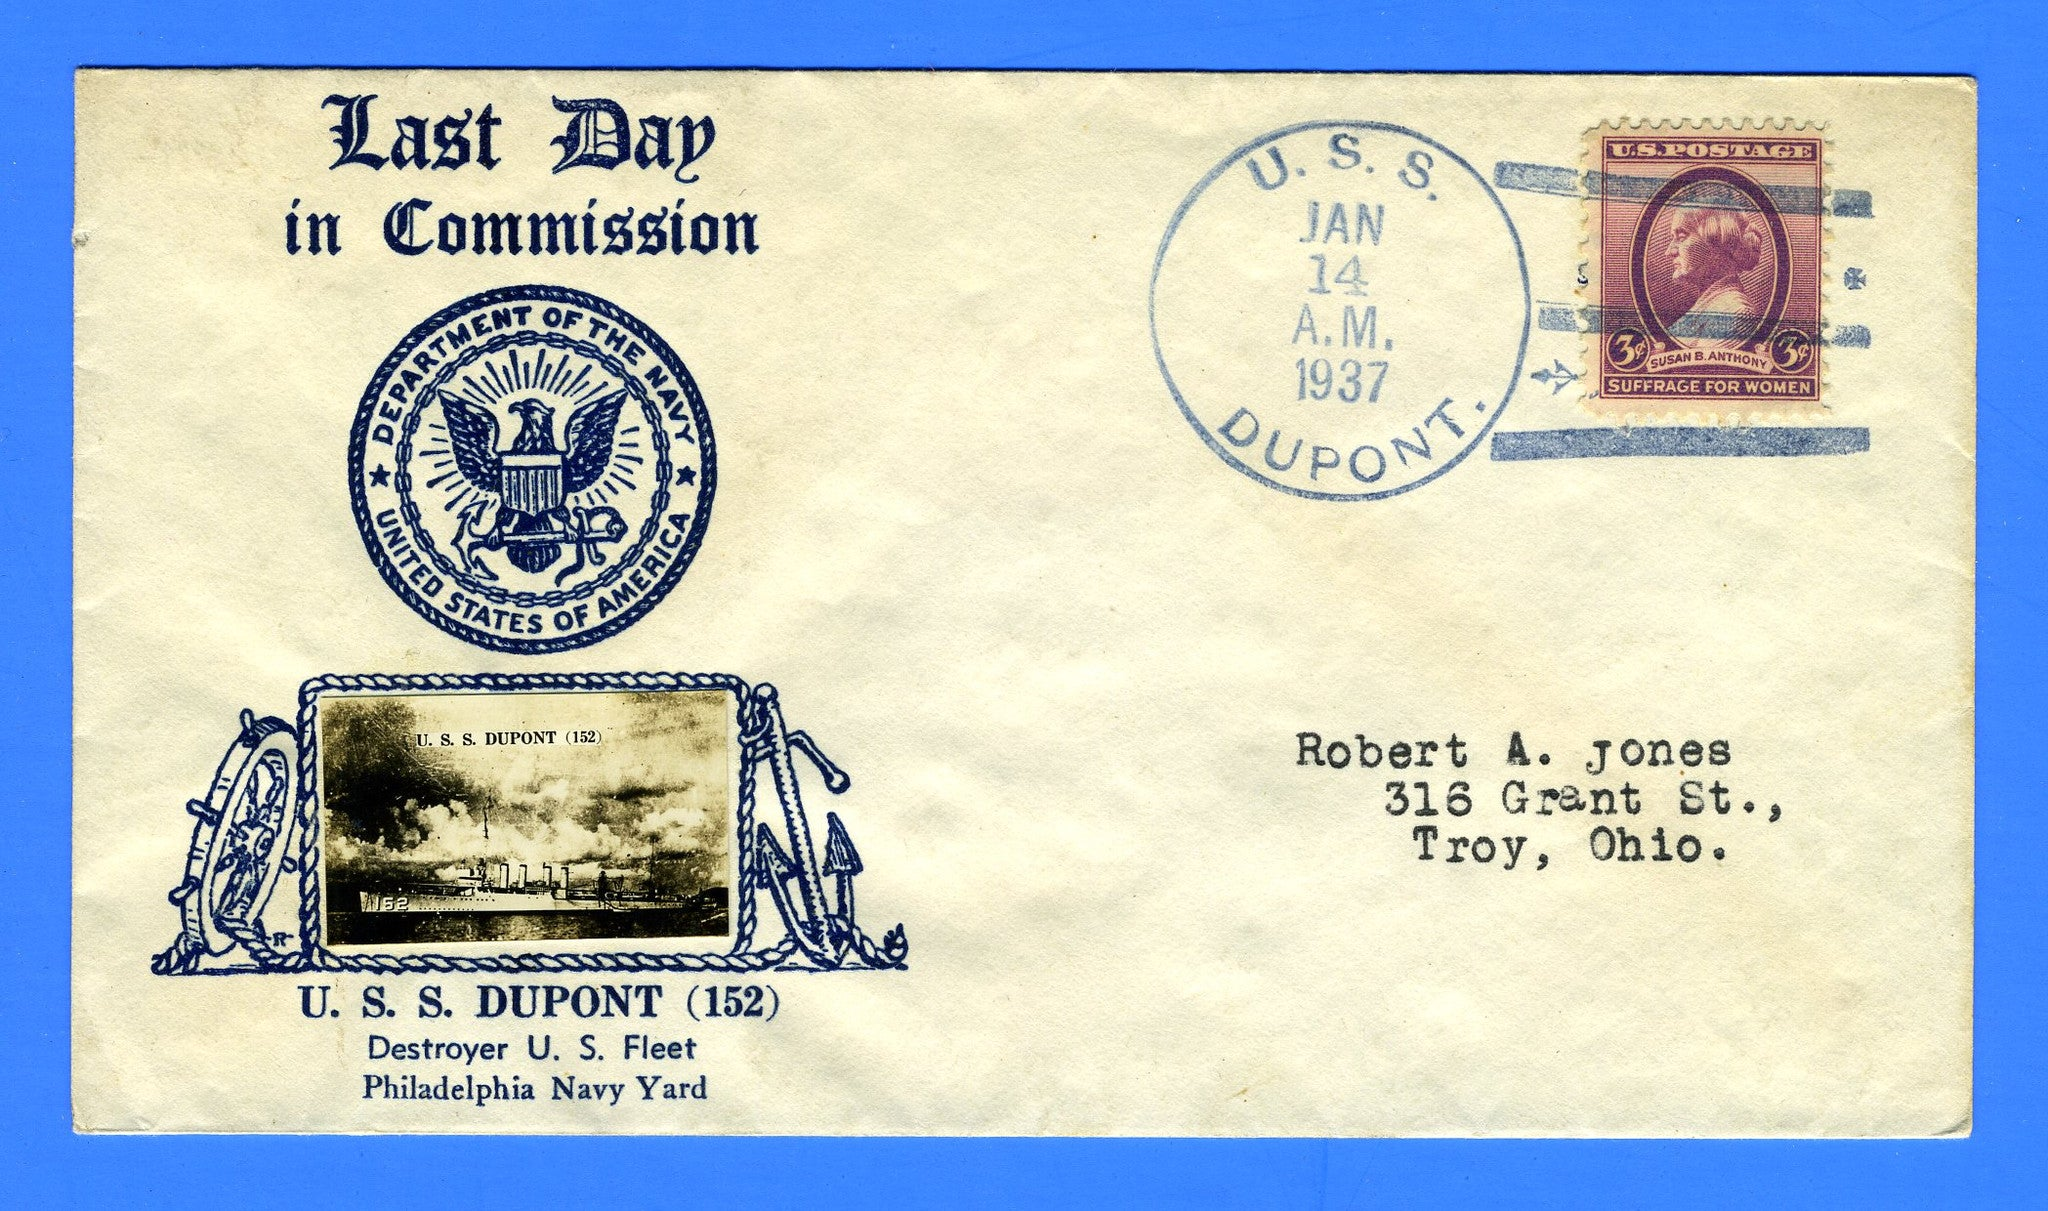 USS Dupont DD-152 Decommissioned January 14, 1937 - Crosby Cachet